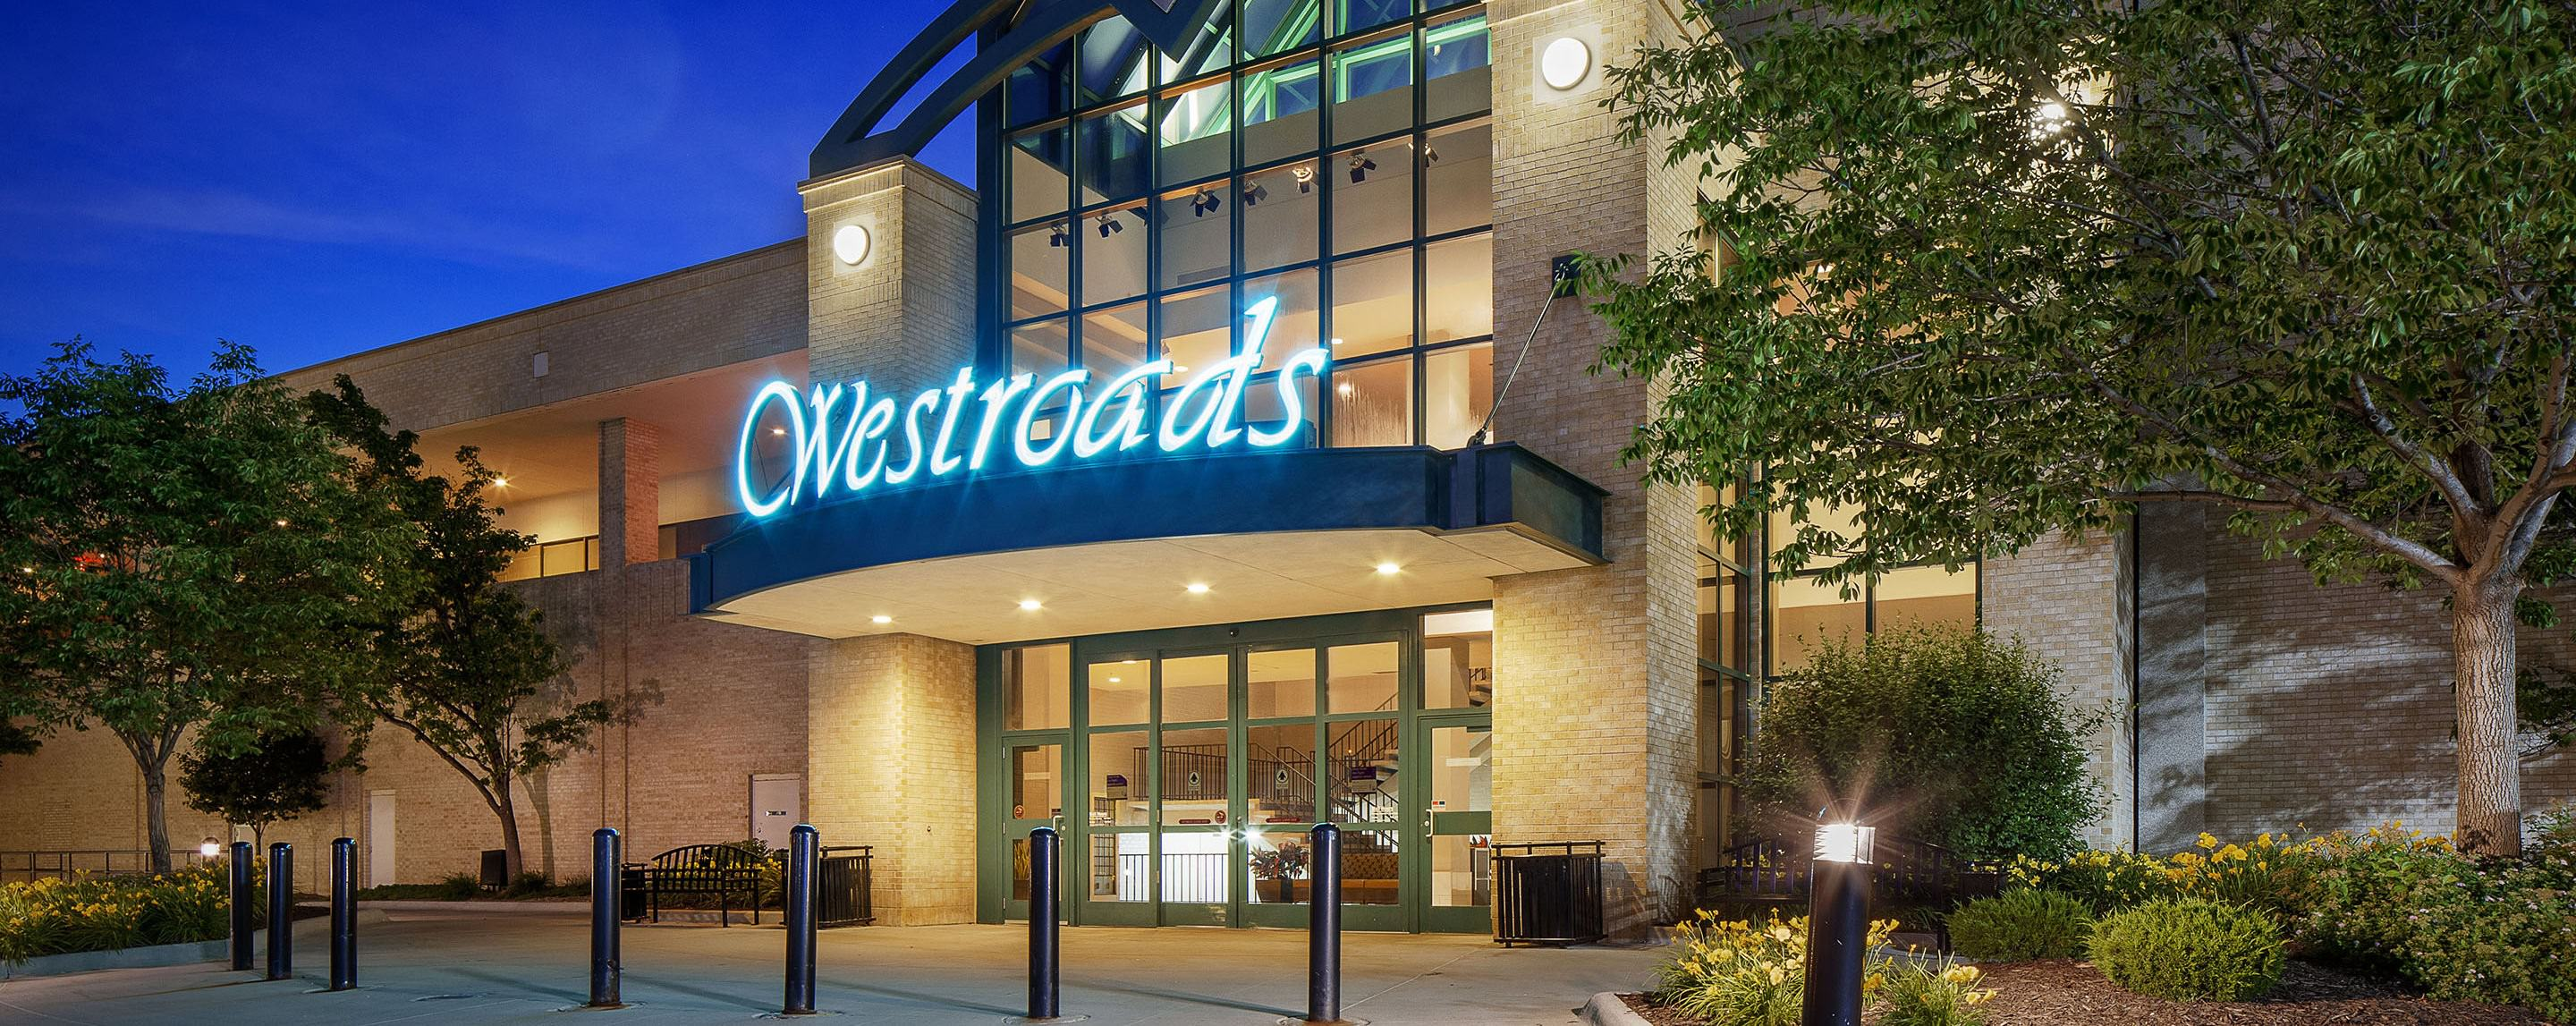 At night, the Westroads Mall sign is brightly lit illuminating the entrance to the mall and surrounding landscape.